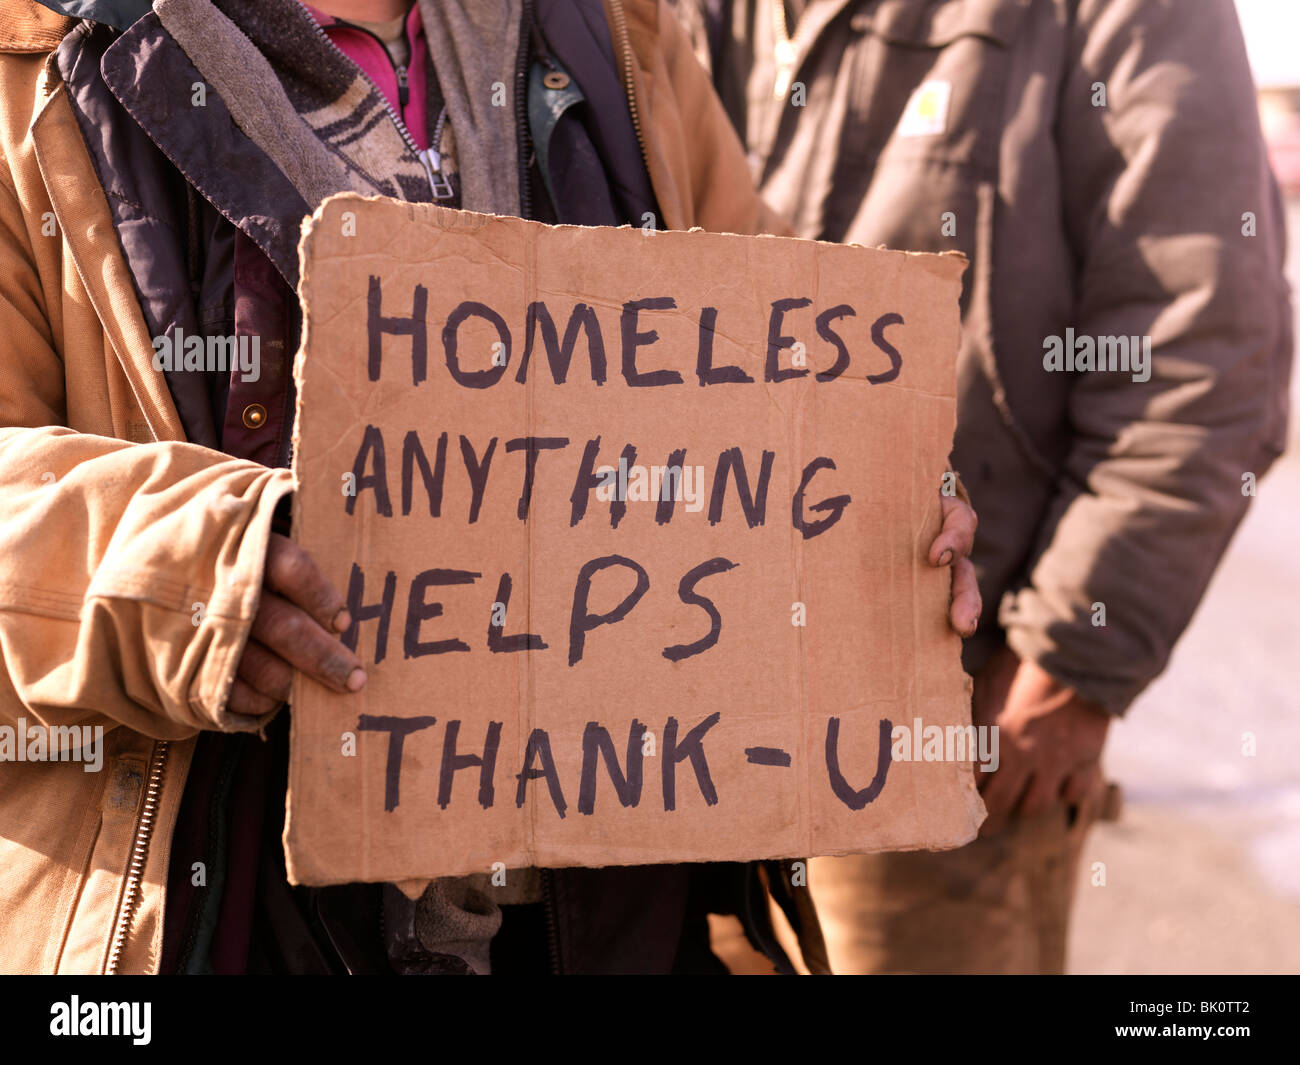 Homeless persons holding sign asking for help and handouts, unemployed and homeless the American recession is tough - Stock Image